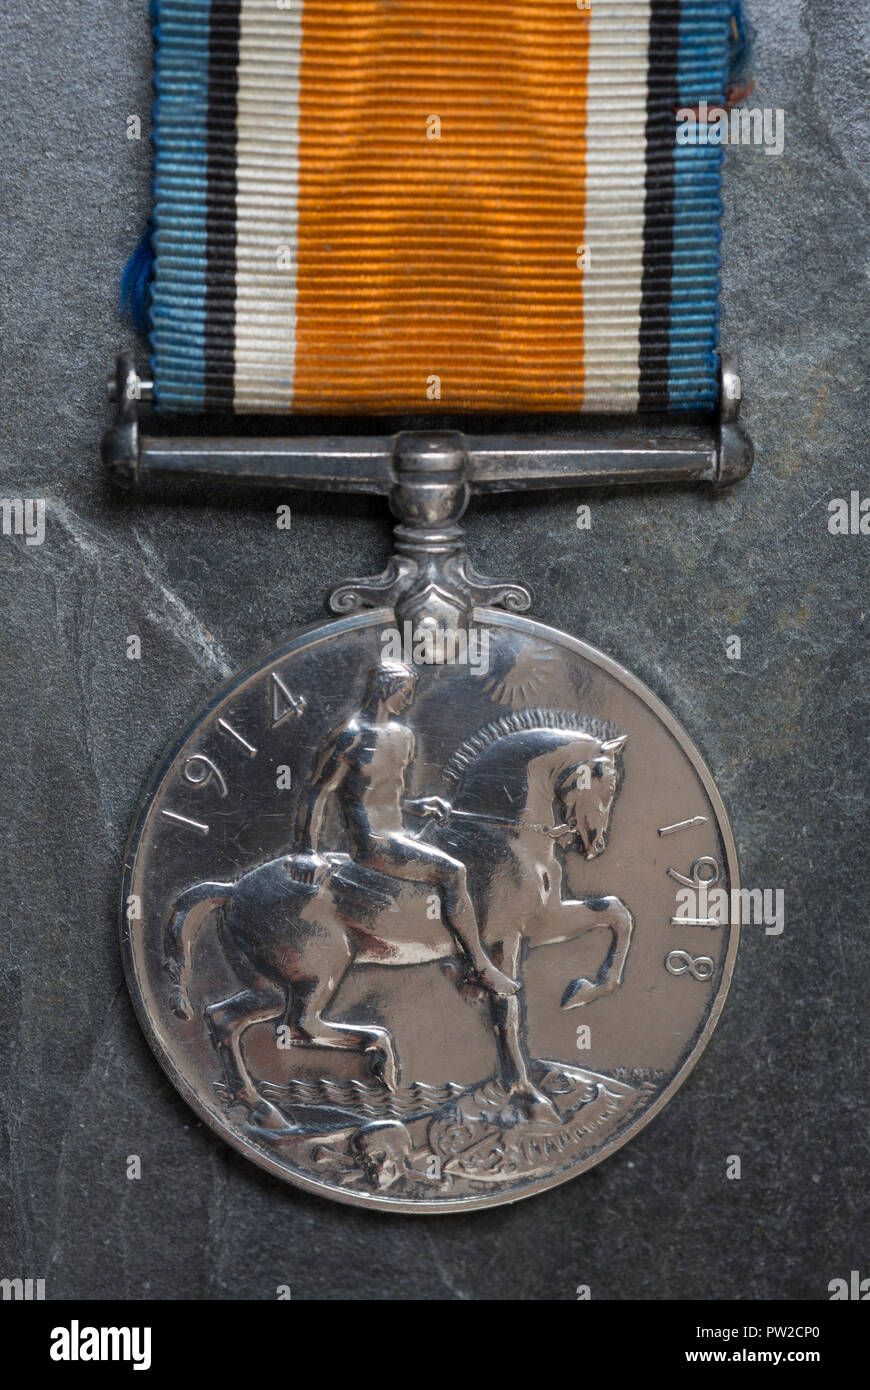 WW1 British Campaign Medal, the British War Medal on a slate background. - Stock Image